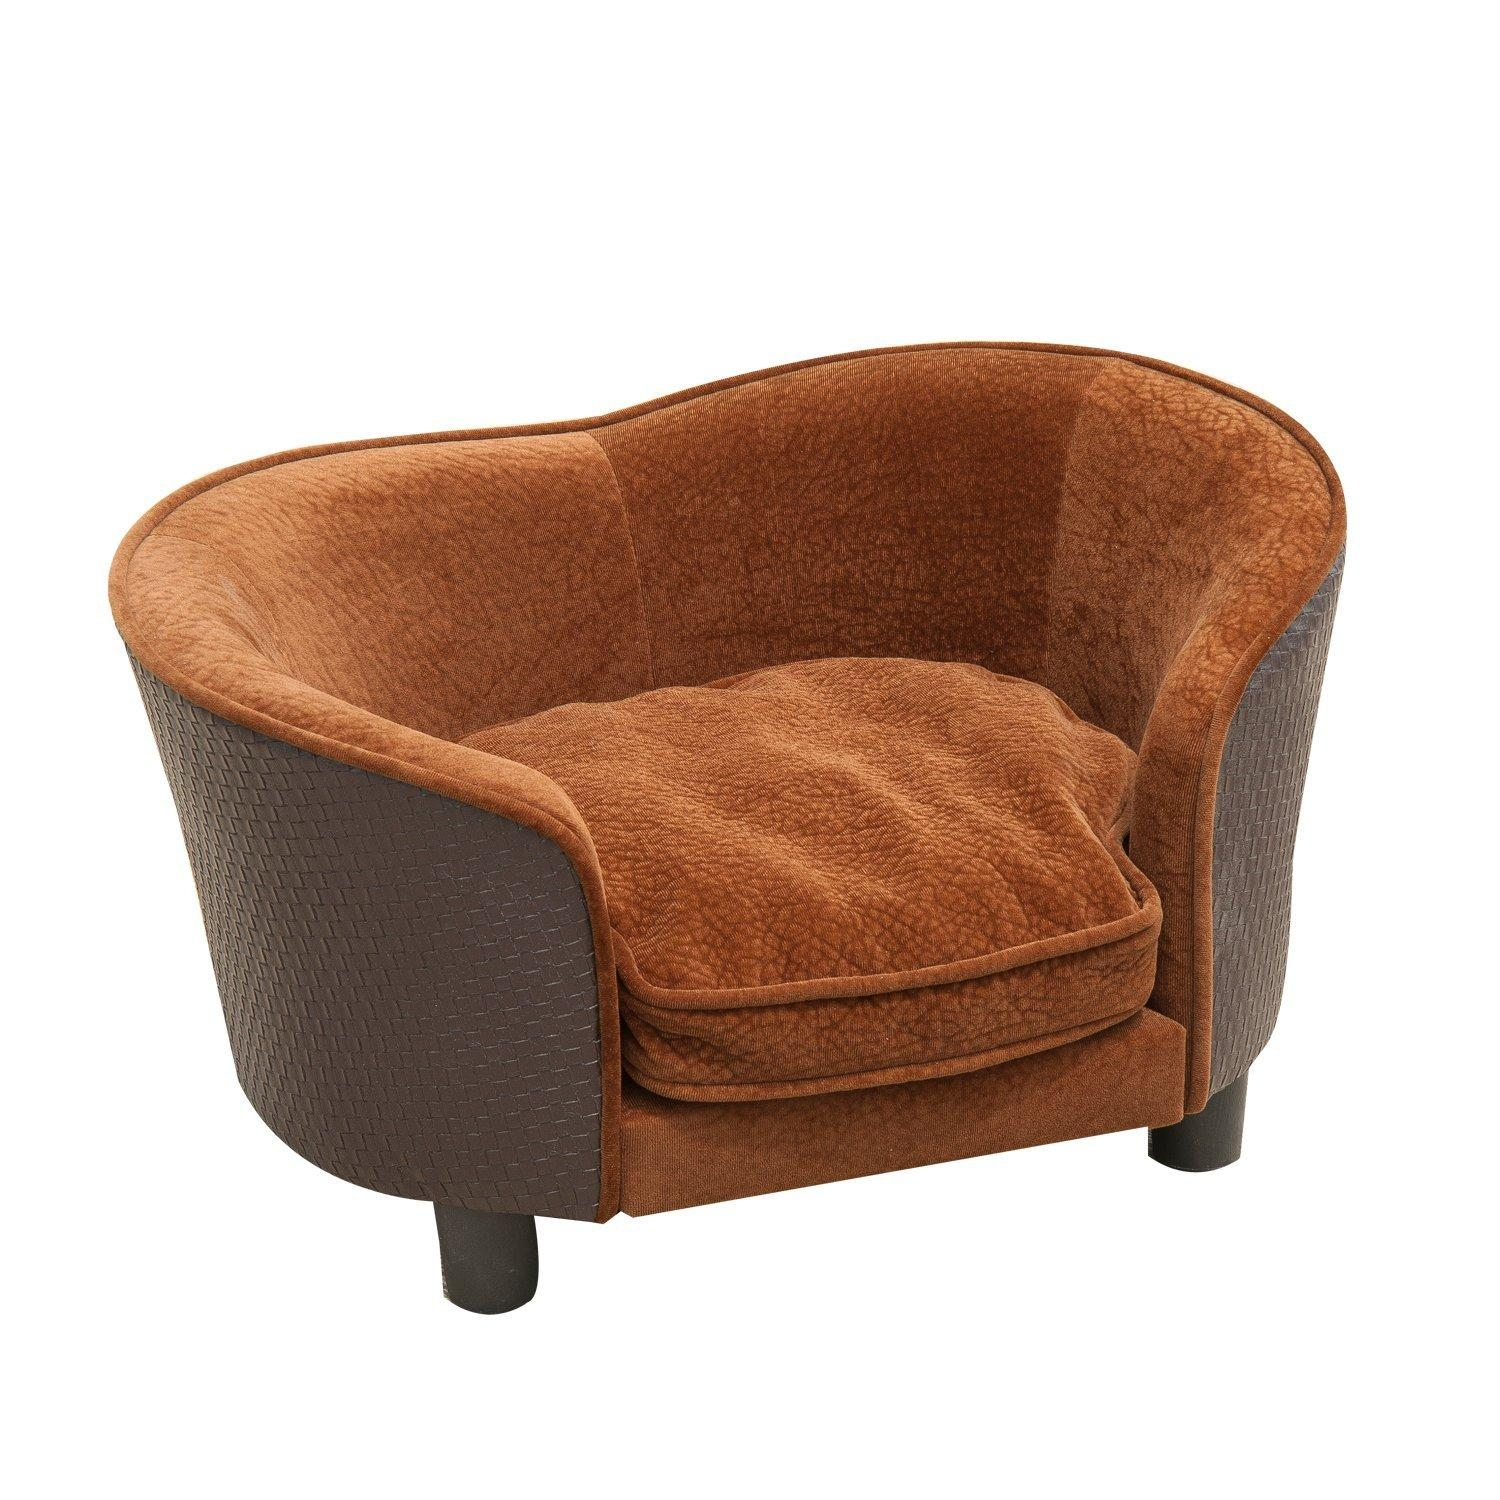 Jetton Sofas - Leather Sectional Sofa intended for Dog Sofas And Chairs